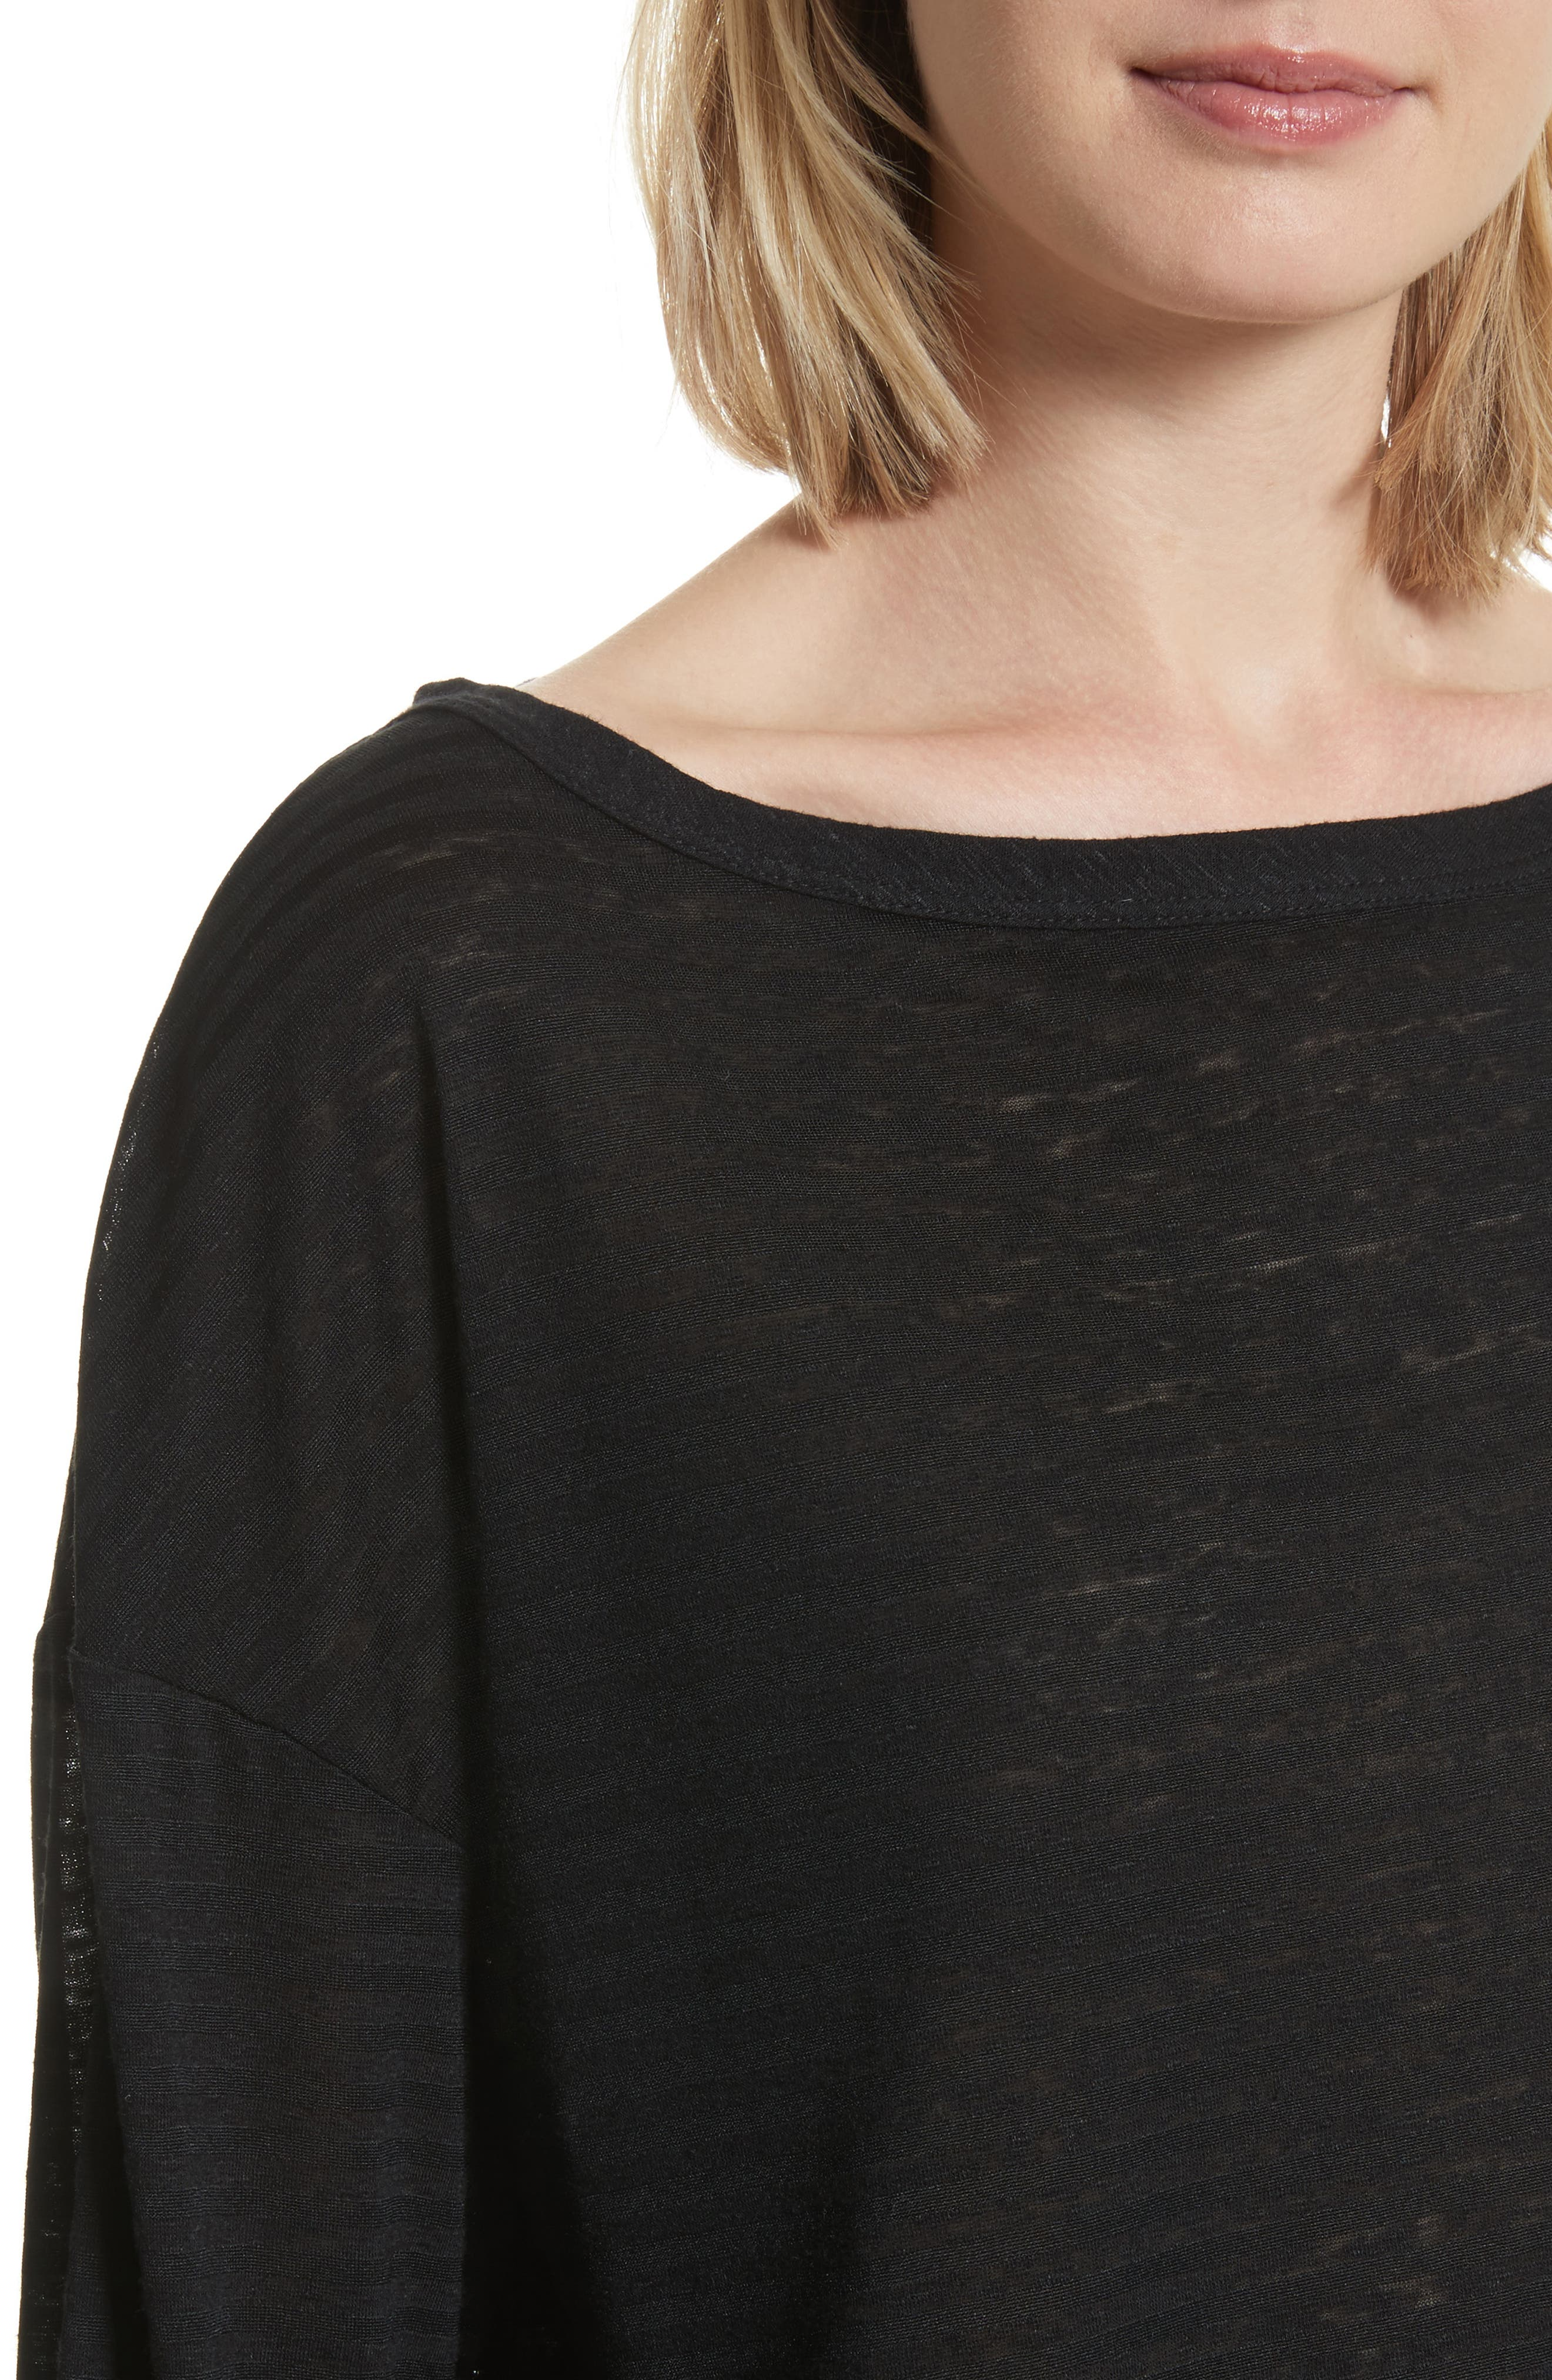 Holton Boat Neck Crop Tee,                             Alternate thumbnail 4, color,                             Black